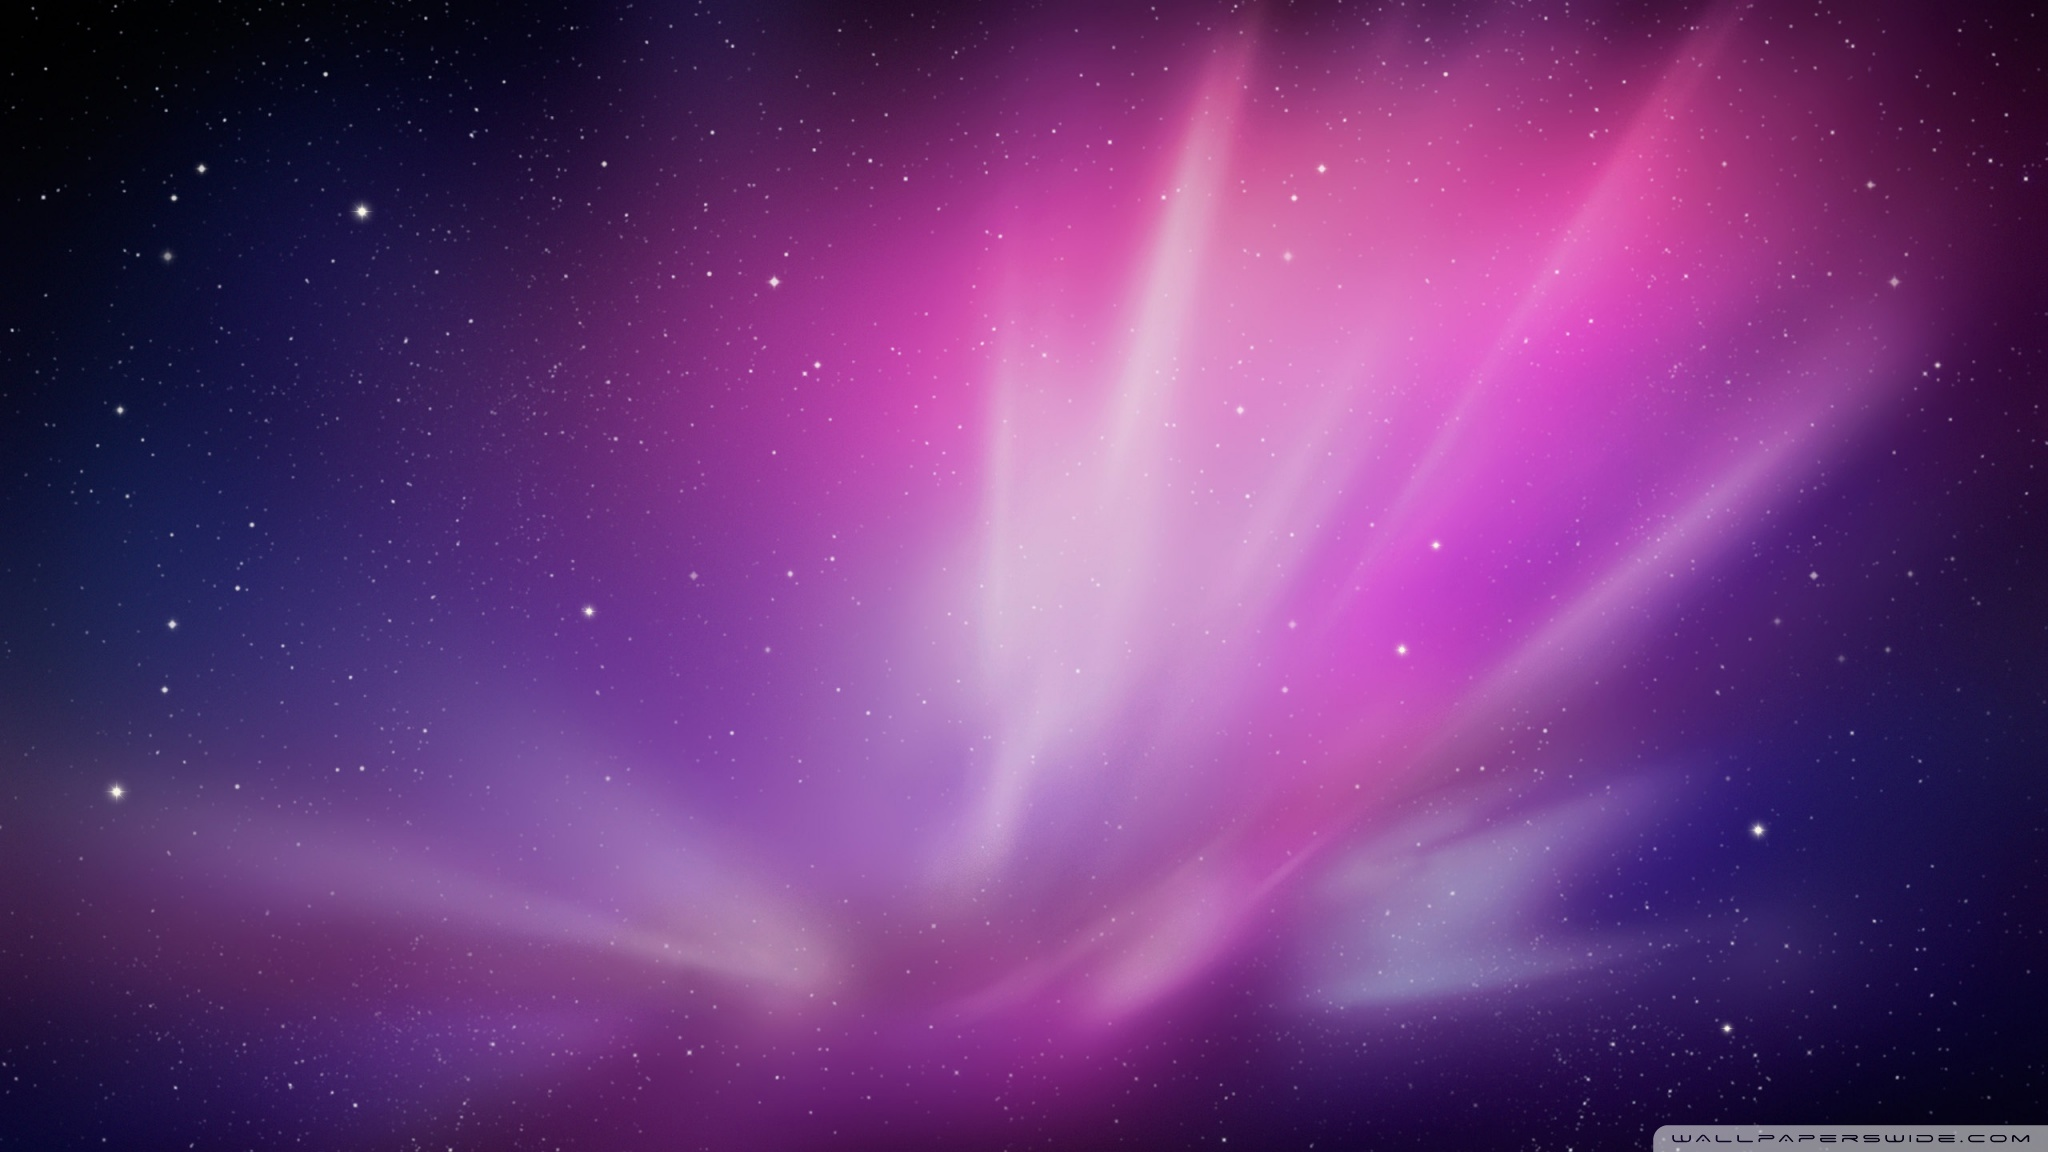 download wallpapers hd for mac gallery